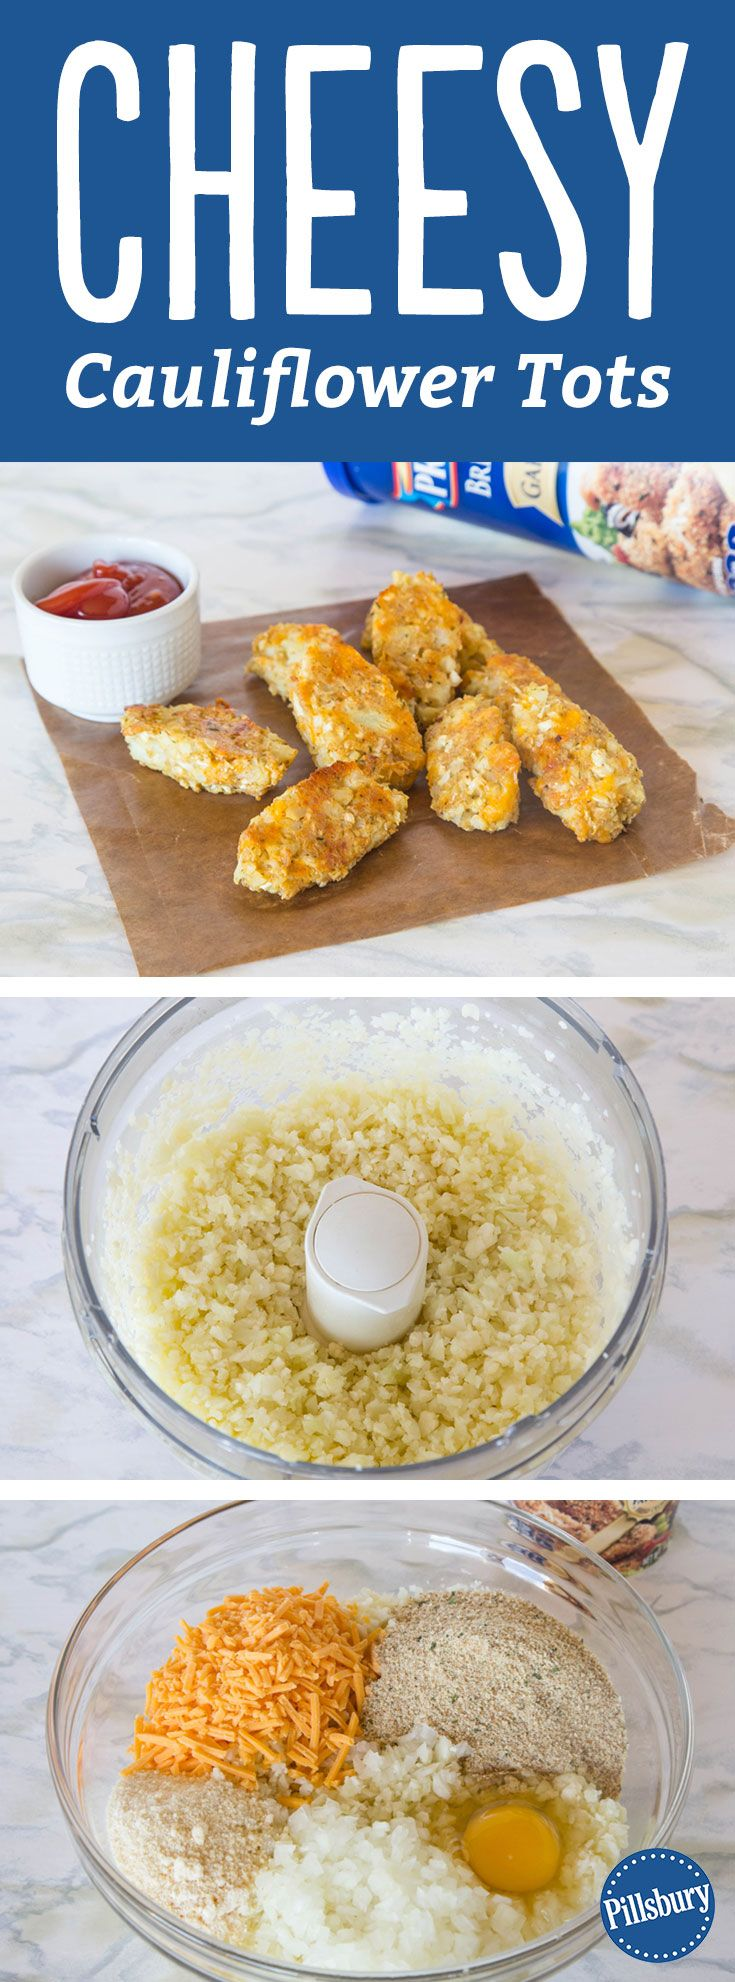 Everything's better when you tot-ify it! Get your kids excited to eat their veggies with these cheesy cauliflower tots. It's a tasty dish even the pickiest eaters will love.   Bonus: This makes a great freezer recipe! Make a large batch and place individual pieces on a cookie sheet lined with parchment. Freeze until solid, then store them in a resealable plastic freezer bag. Pull them out for busy weeknights, baking a little longer as needed since they're frozen.